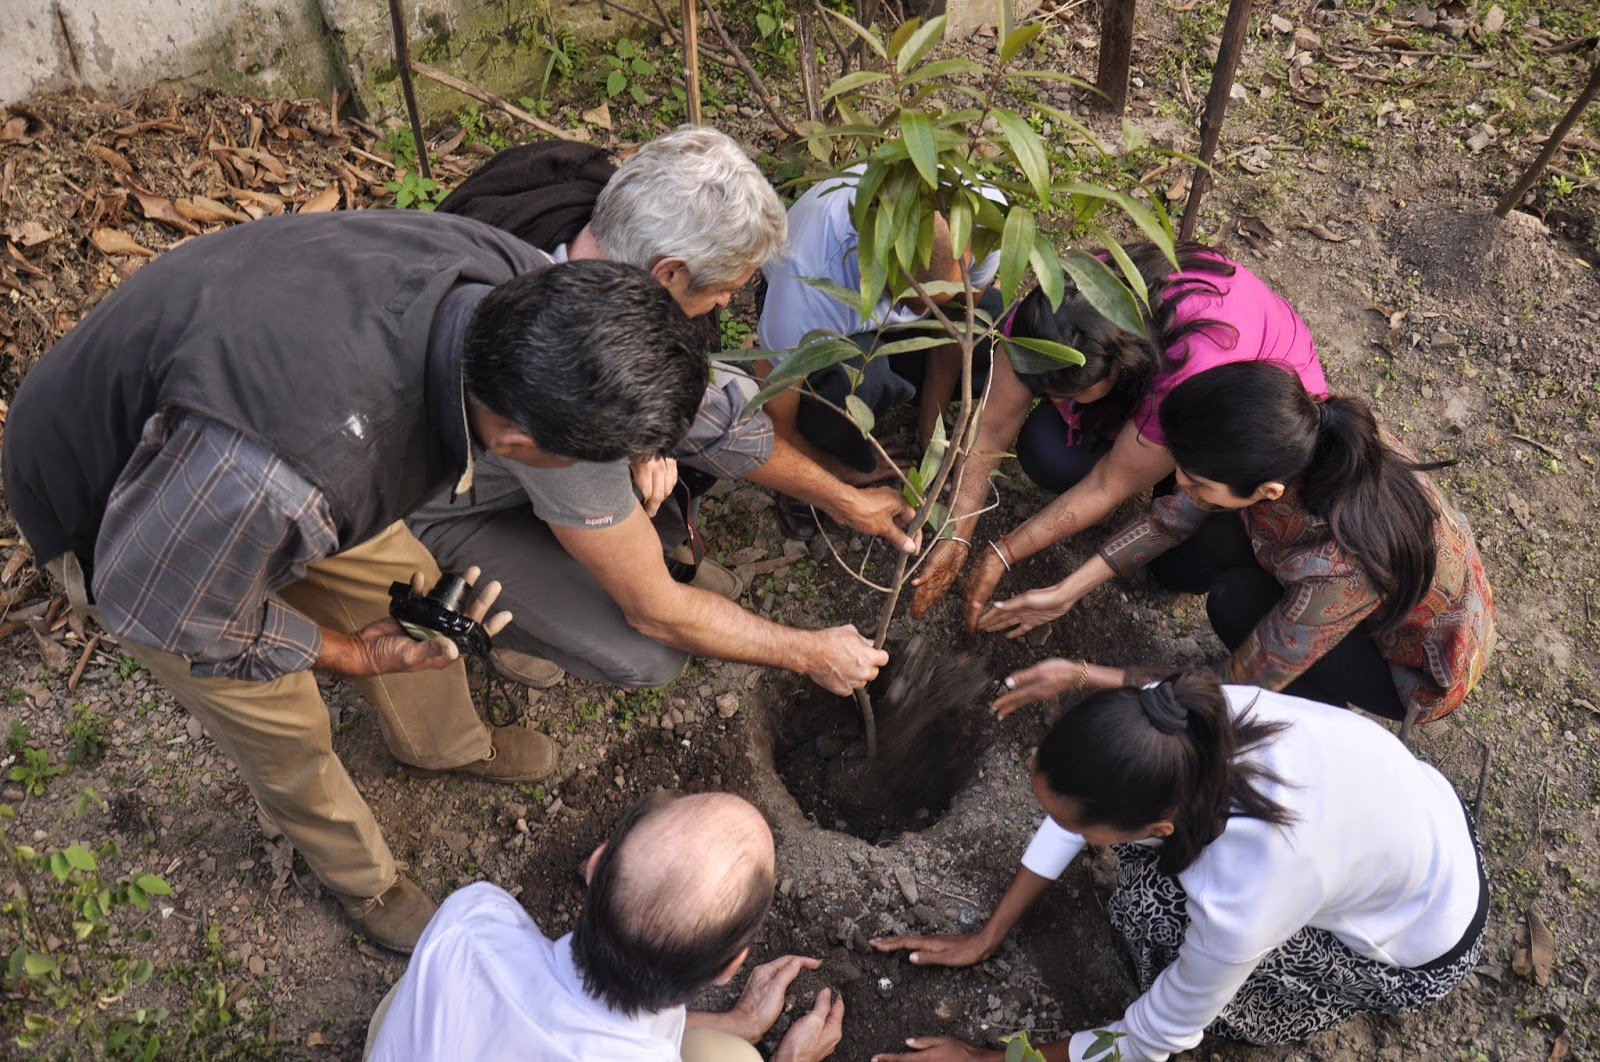 Fruit trees being planted by Murli Khemka and Meghna Khemka in Mulvany House, Kolkata, India.